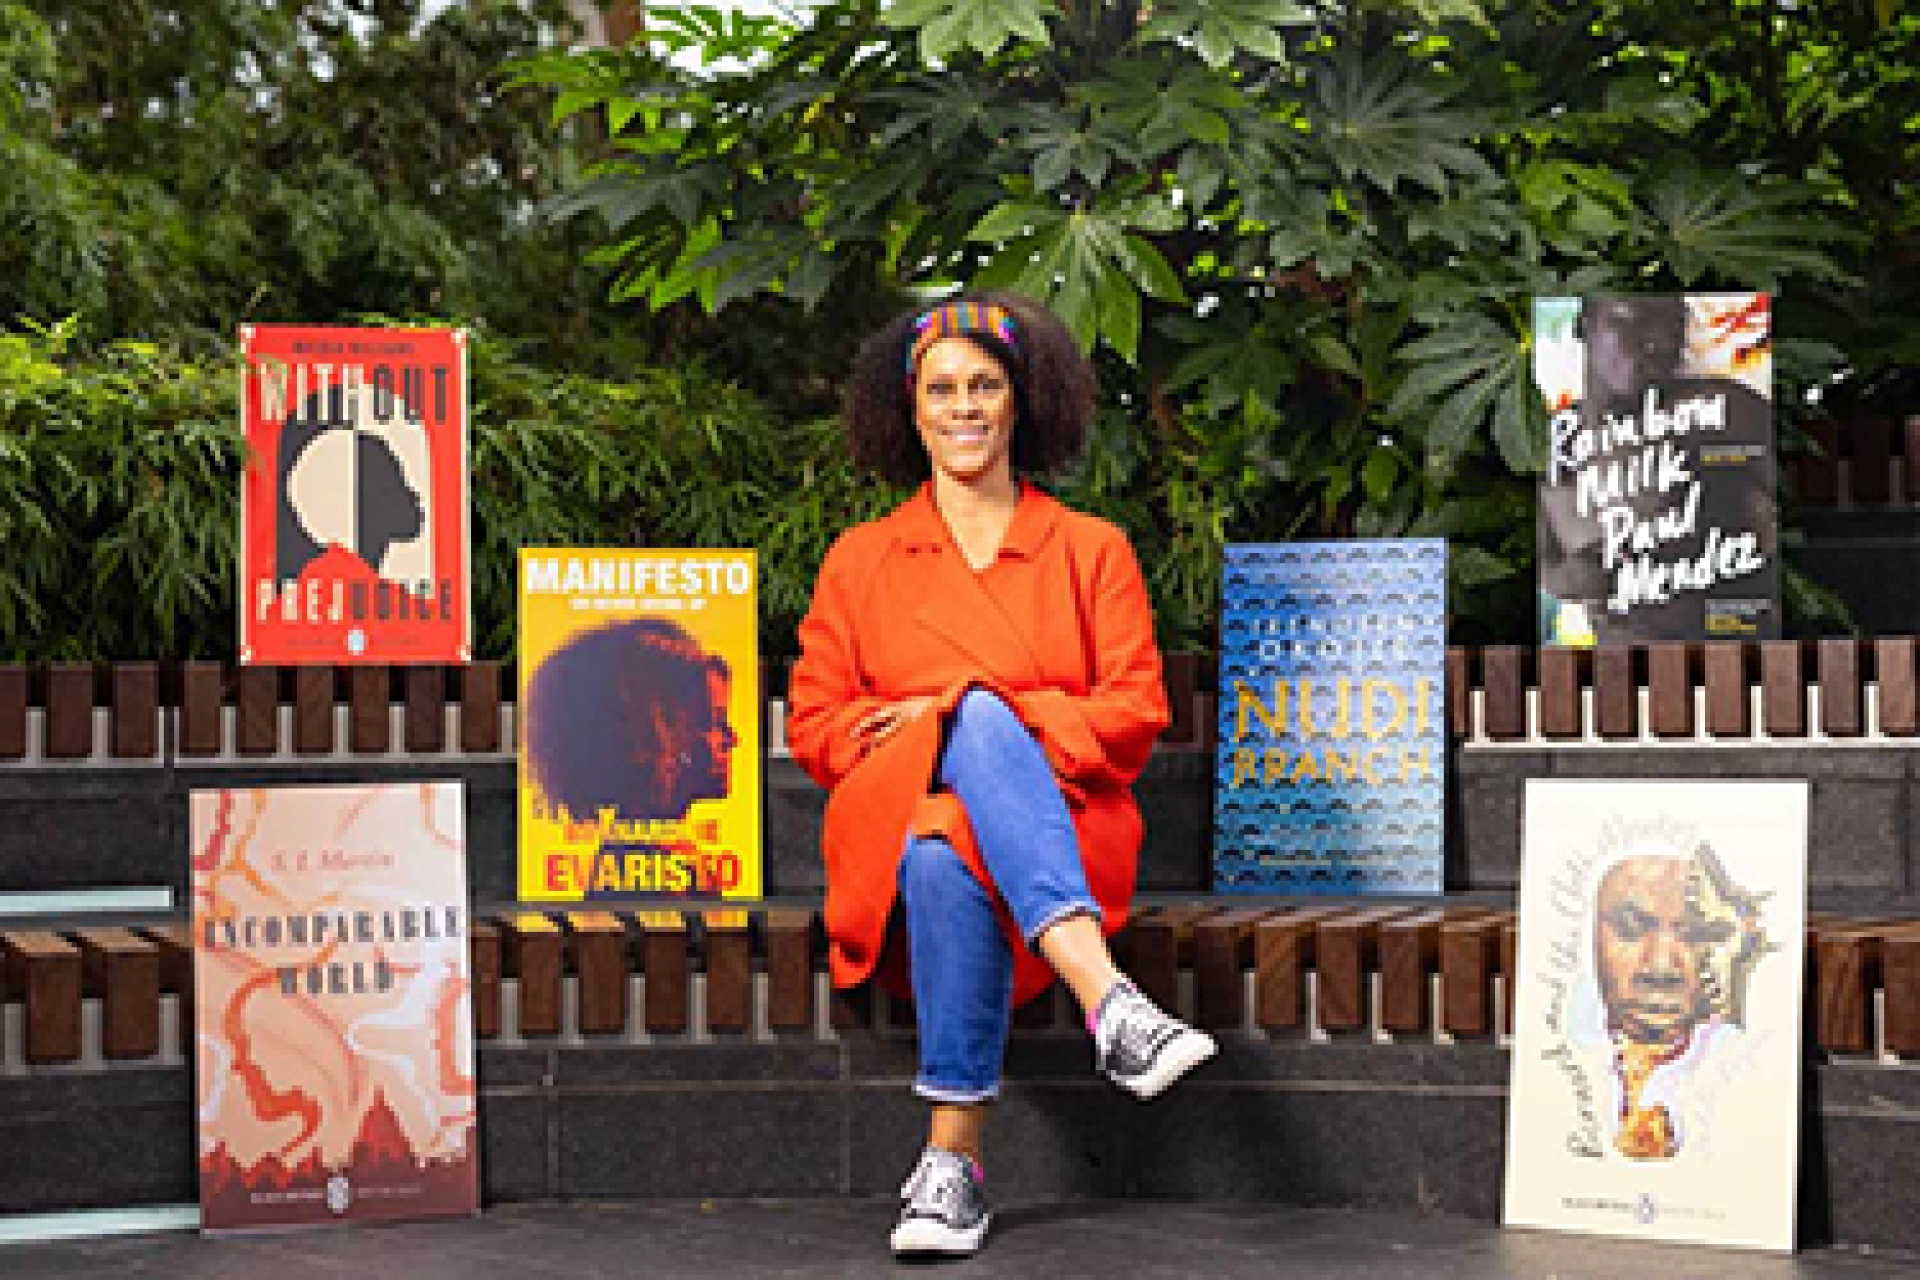 Canary Wharf's Short Story Stations to dispense stories from black authors this Black History Month with Bernardine Evaristo